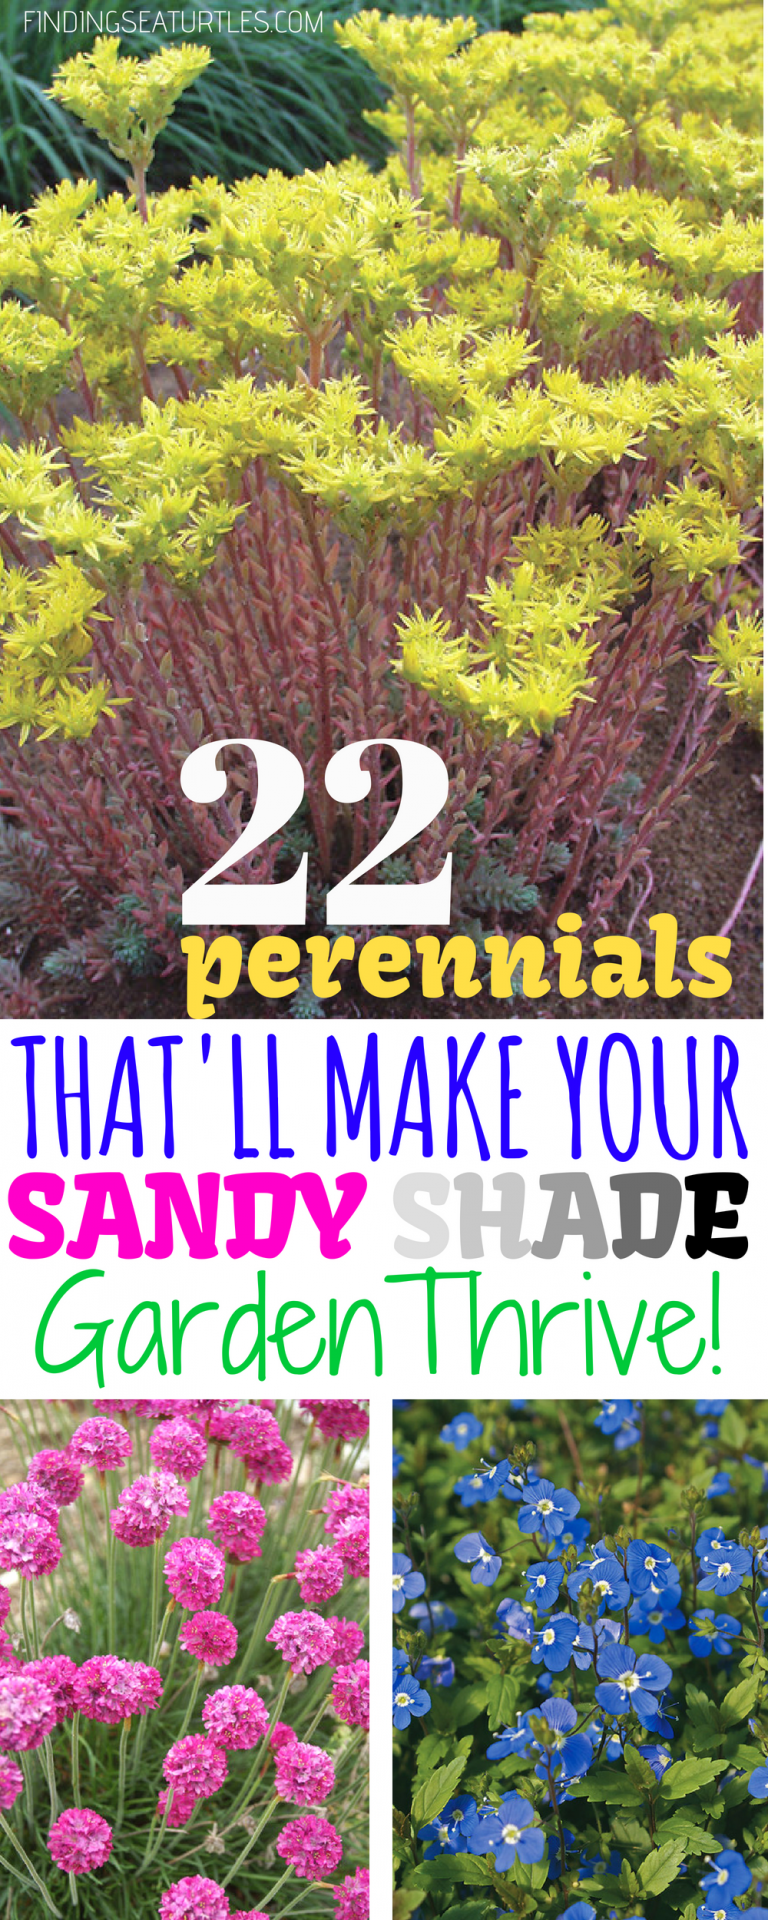 22 Sandy Soil Perennials for Shade - Finding Sea Turtles